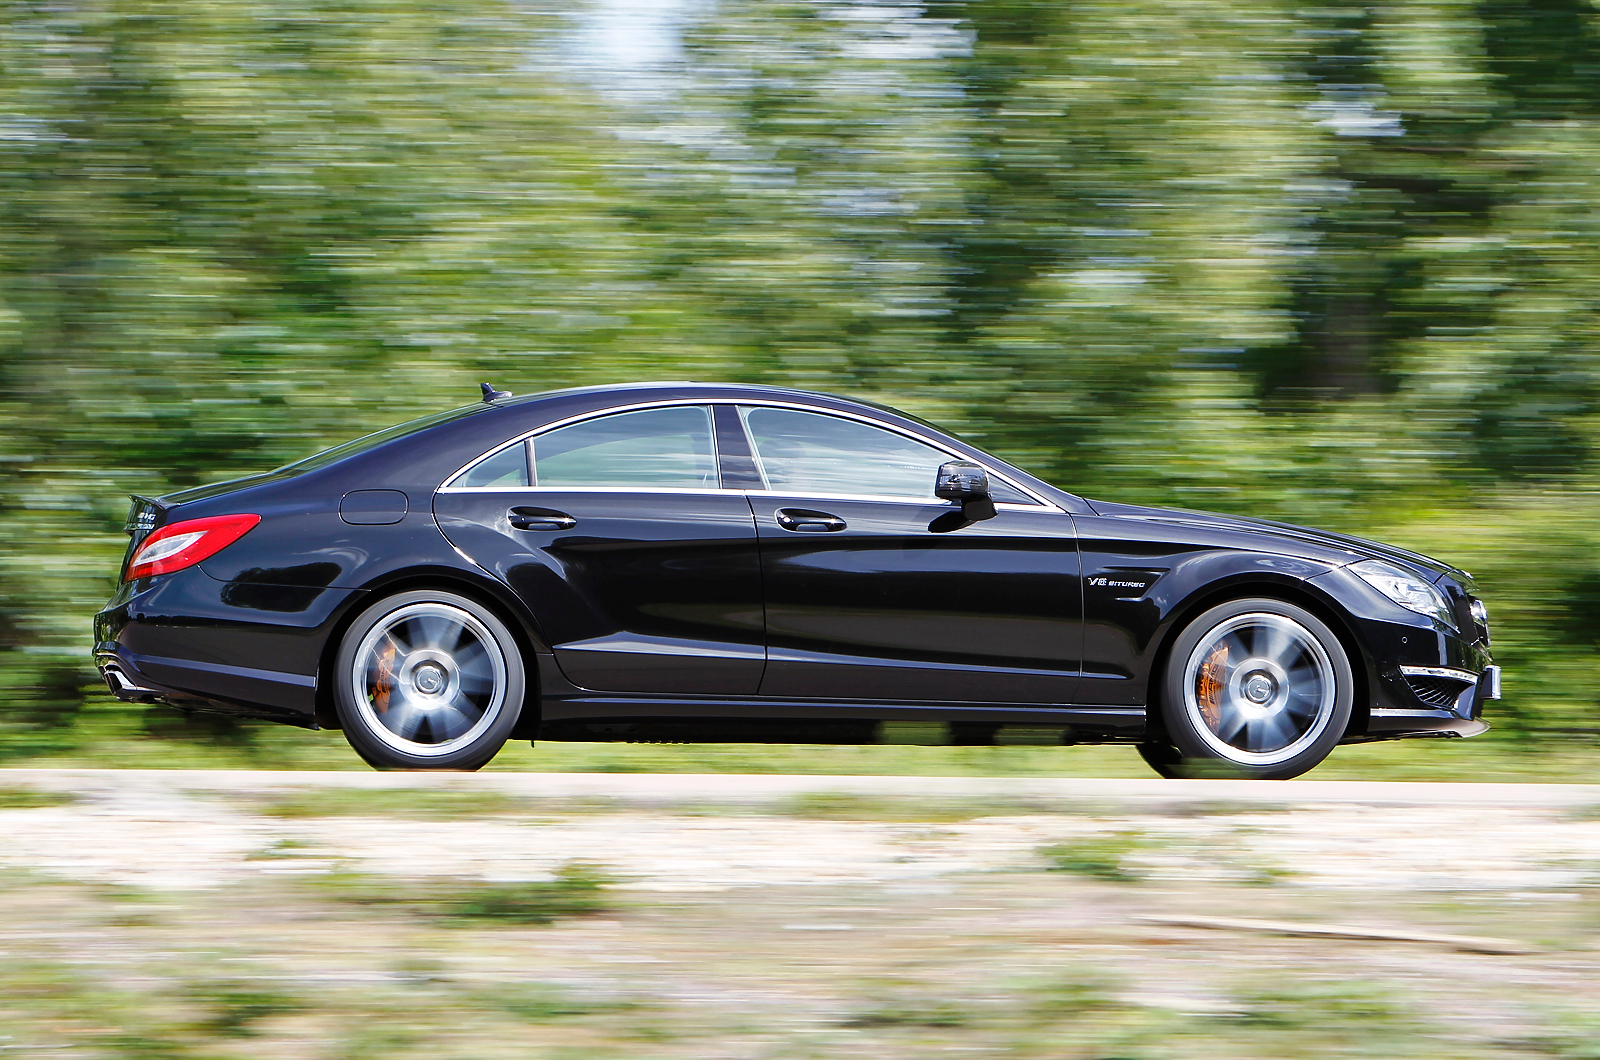 Mercedes benz cls63 amg review autocar for Mercedes benz cls63 amg price